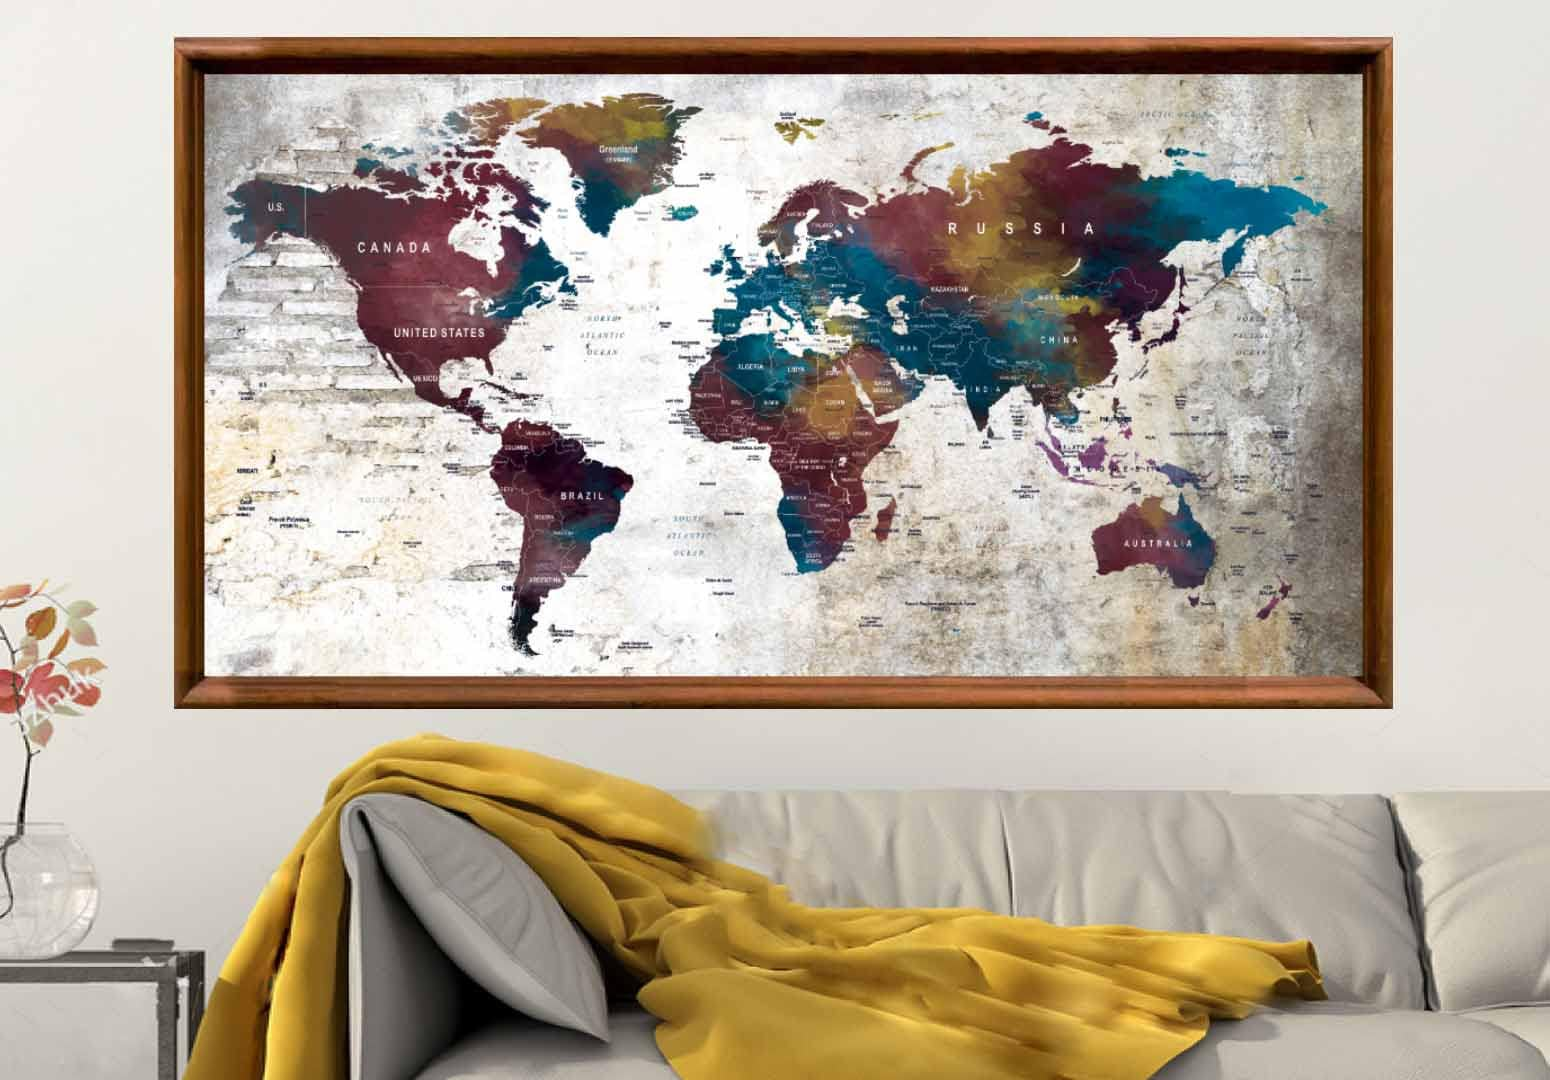 Large world map posterworld map wall artworld map decalpush pin large world map posterworld map wall artworld map decalpush pin map posterpush pin map art map printworld map wall decalmap art gumiabroncs Image collections